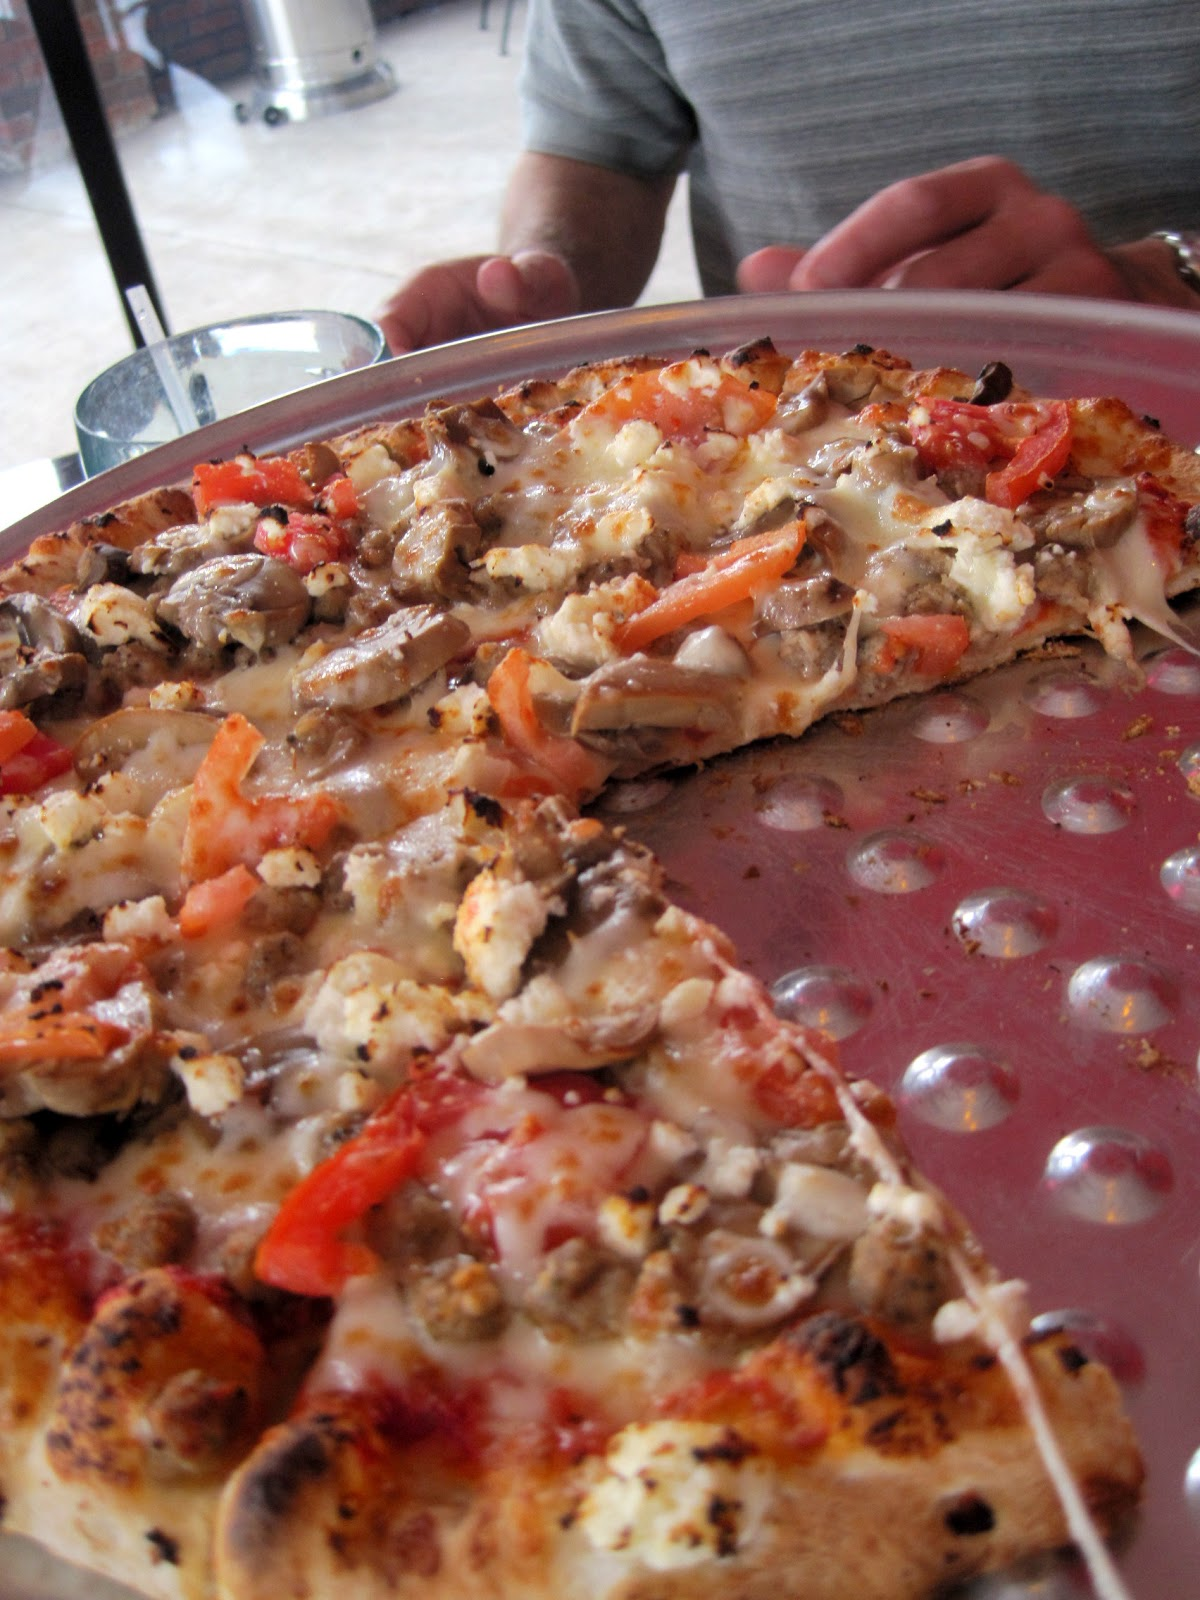 I Did A U0027make Your Ownu0027 With Sausage, Fresh Tomatoes, Mushrooms, Provolone,  And Fetau2026 Light On The Tomato Sauce. Oh My! Iu0027ve Never Had Feta On A Pizza.